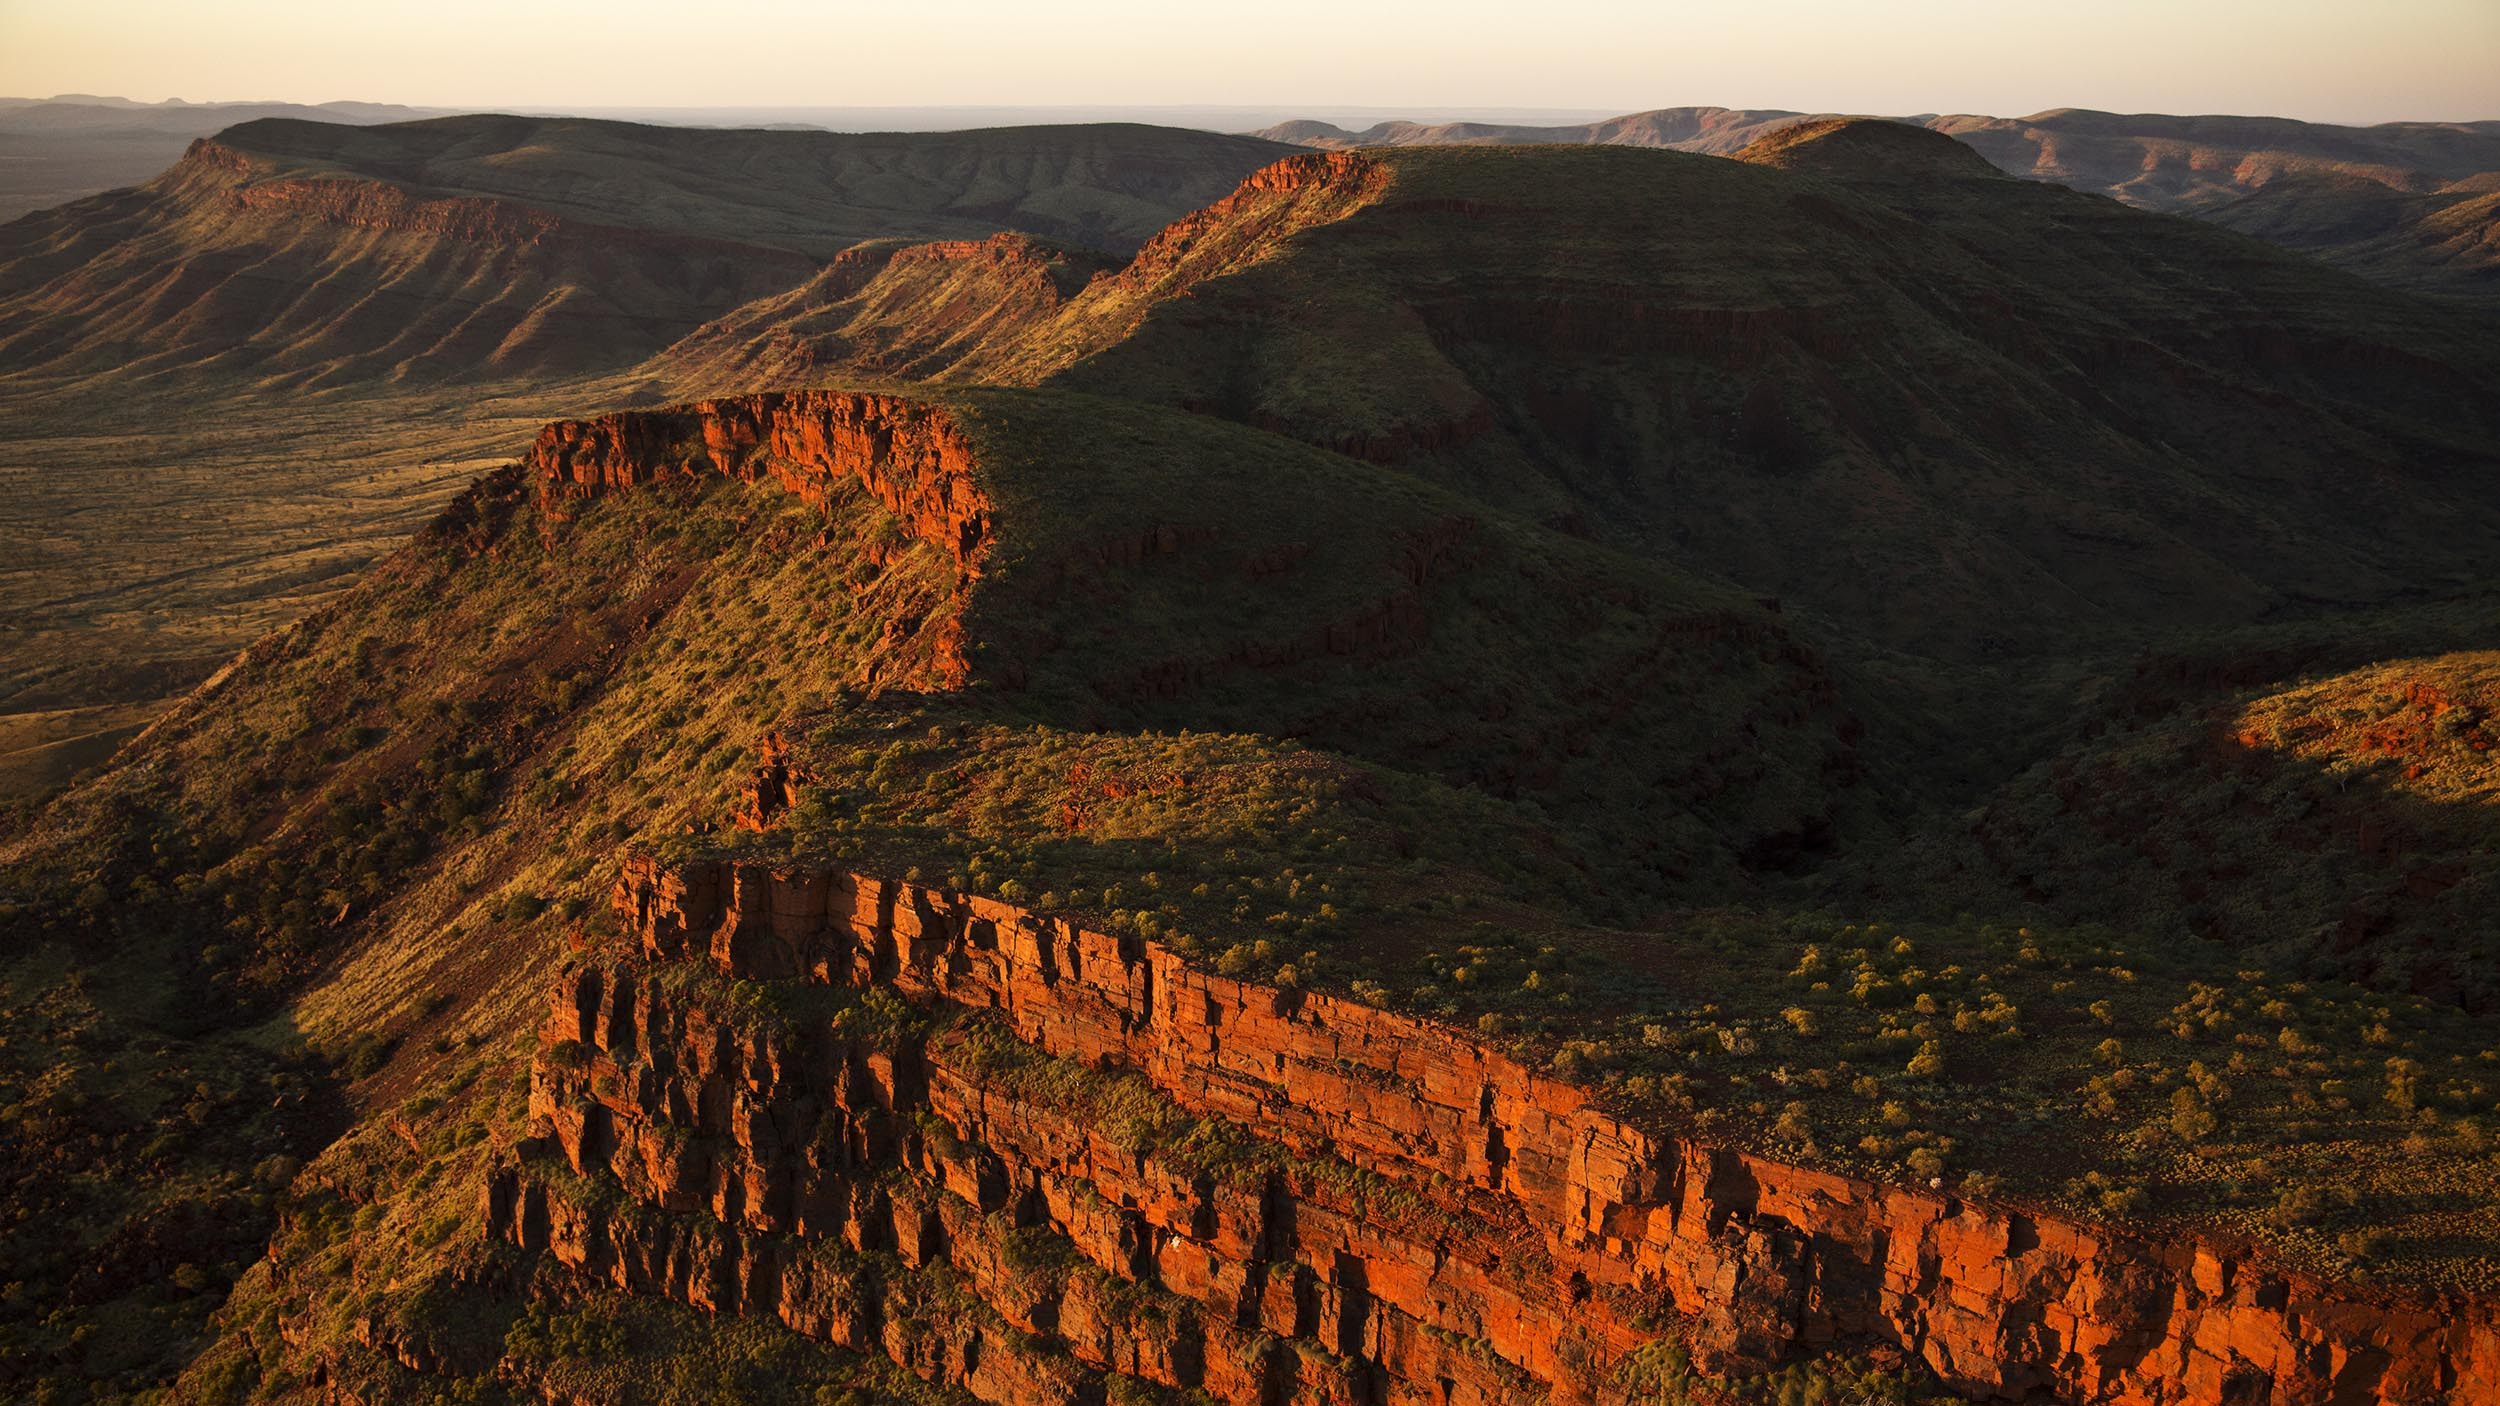 A typical Pilbara landscape of mesas, escarpments, rolling hills and spinifex grasslands at Mount Frederick, Western Australia.